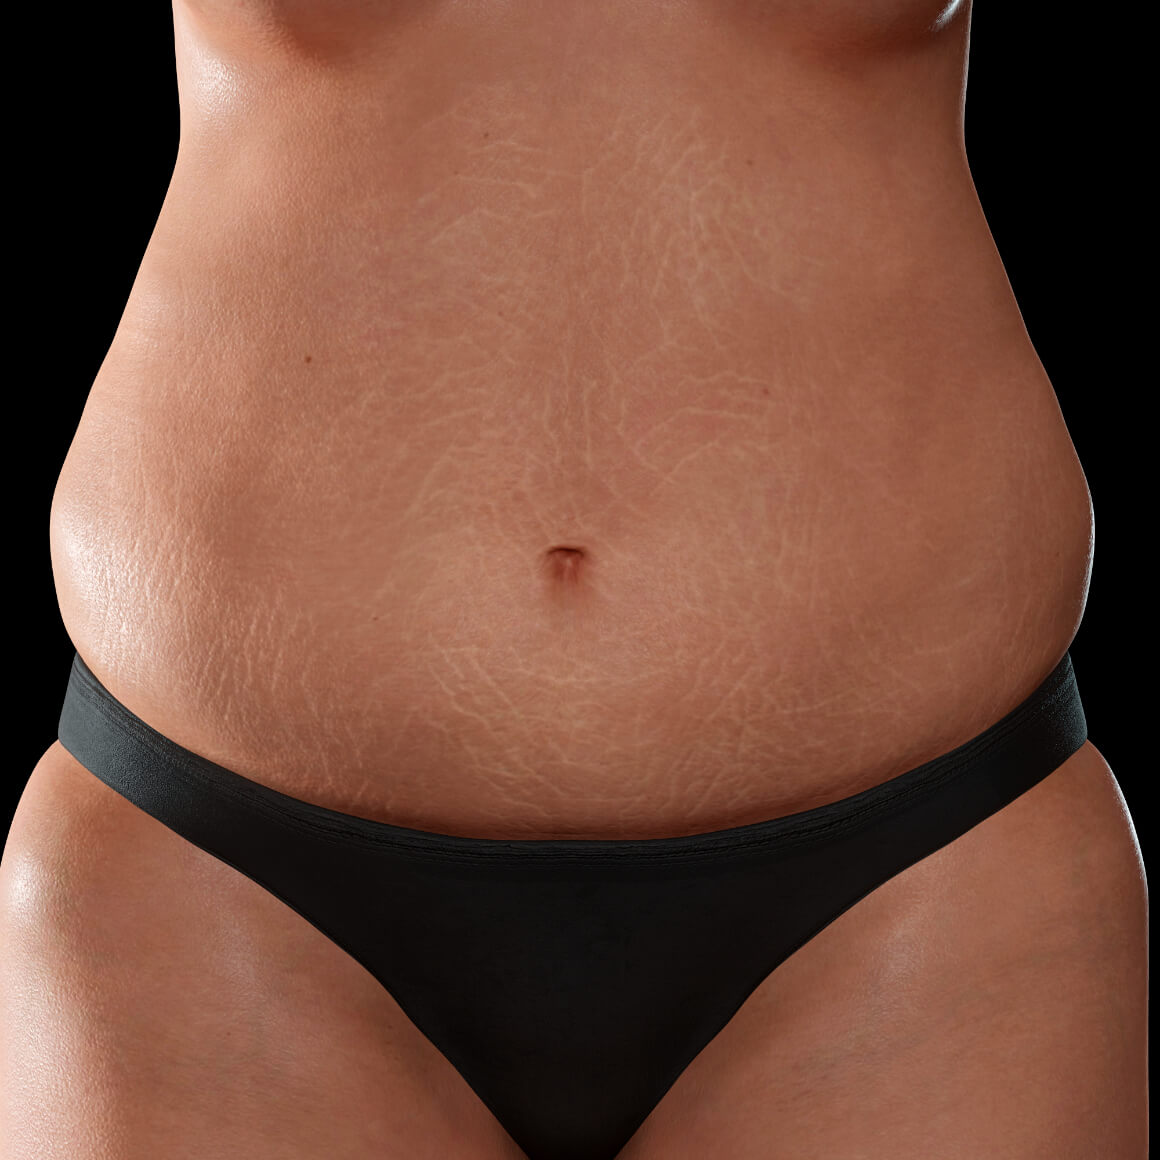 Female patient from Clinique Chloé facing front with stretch marks on her abdomen